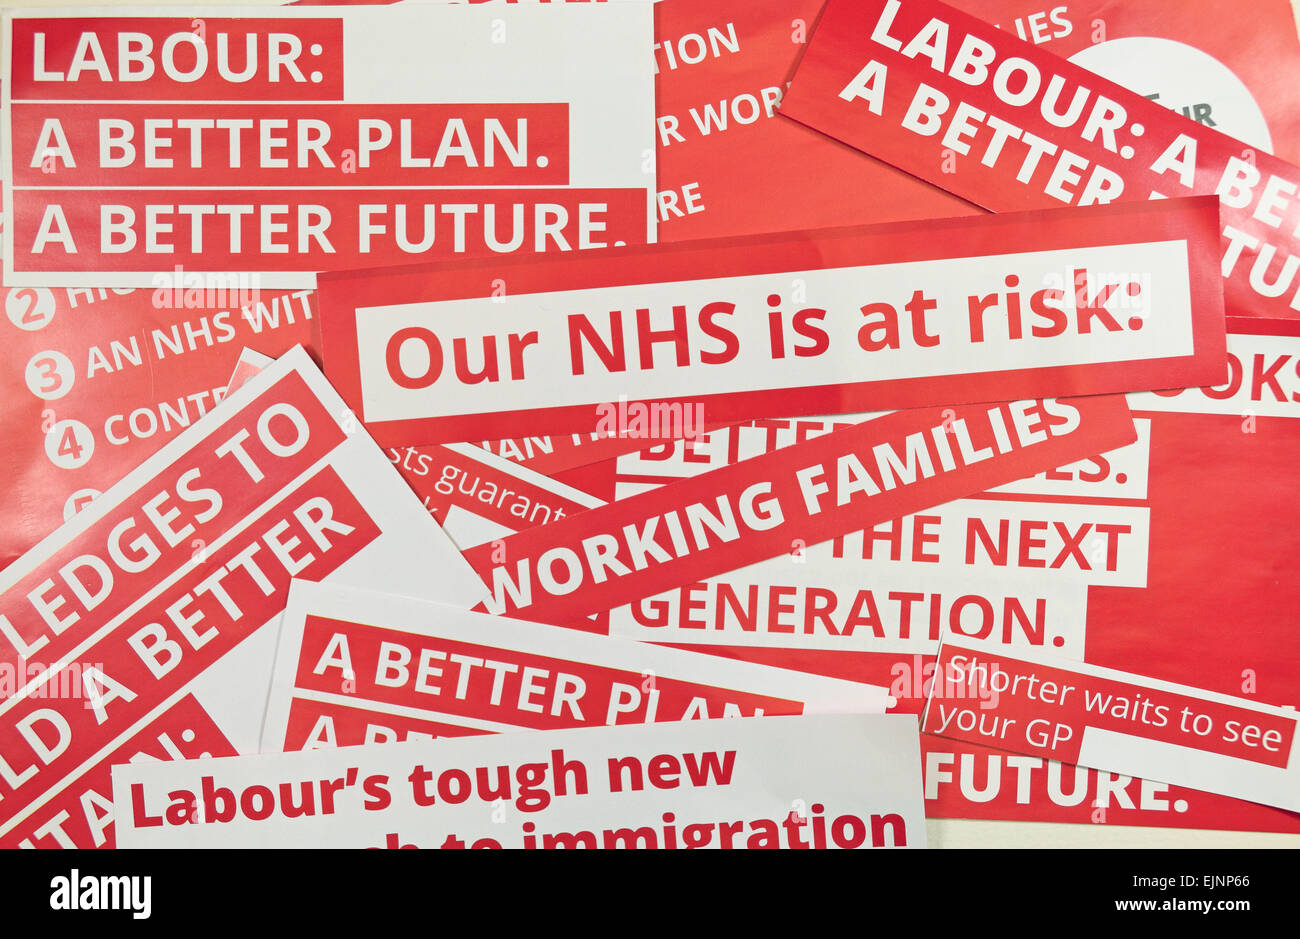 Cut out slogans from Labour party literature received before the General Election in 2015 had begun. - Stock Image